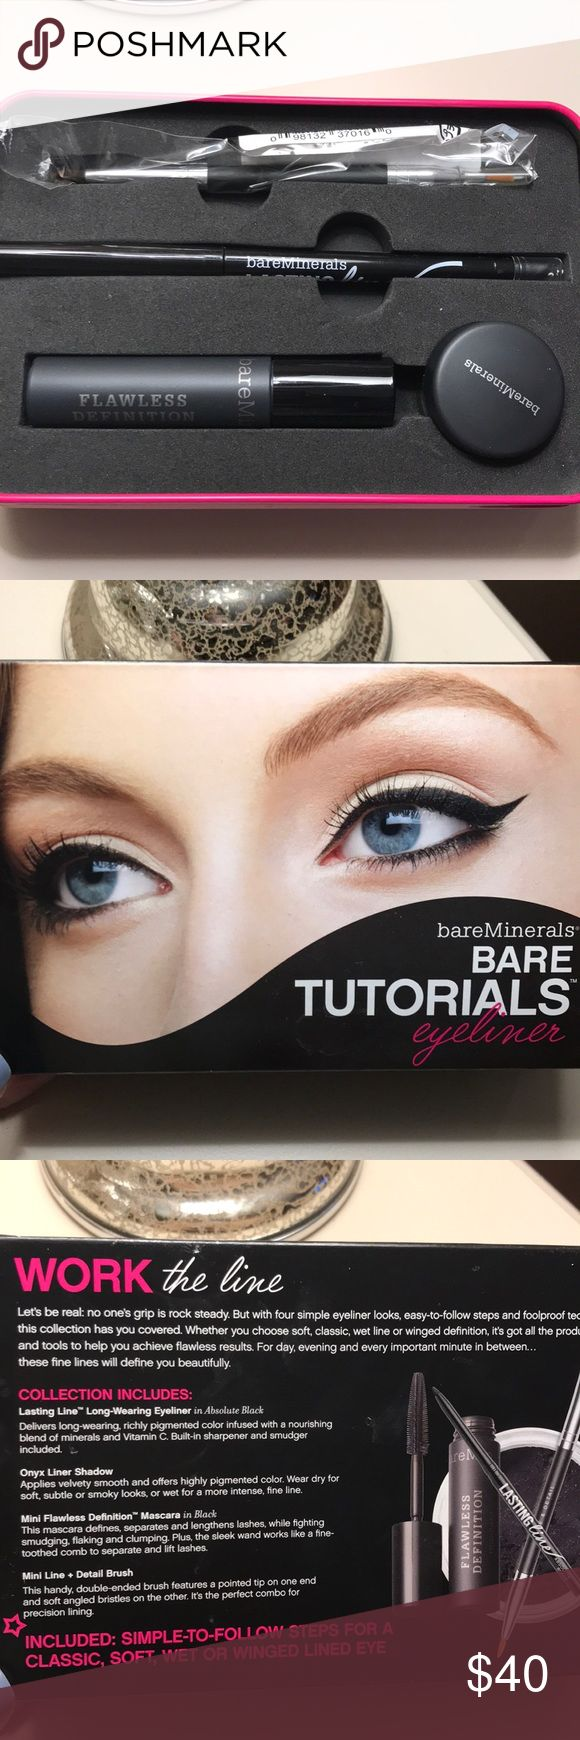 Bare Minerals eyeliner tutorial kit Brand new, never used. Some marks on tin case.  Comes with:  Lasting Line Long-Wearing Eyeliner Onyx Liner Shadow  Mini Flawless Definition Mascara  Mini Line + Detail Brush bareMinerals Makeup Eyeliner